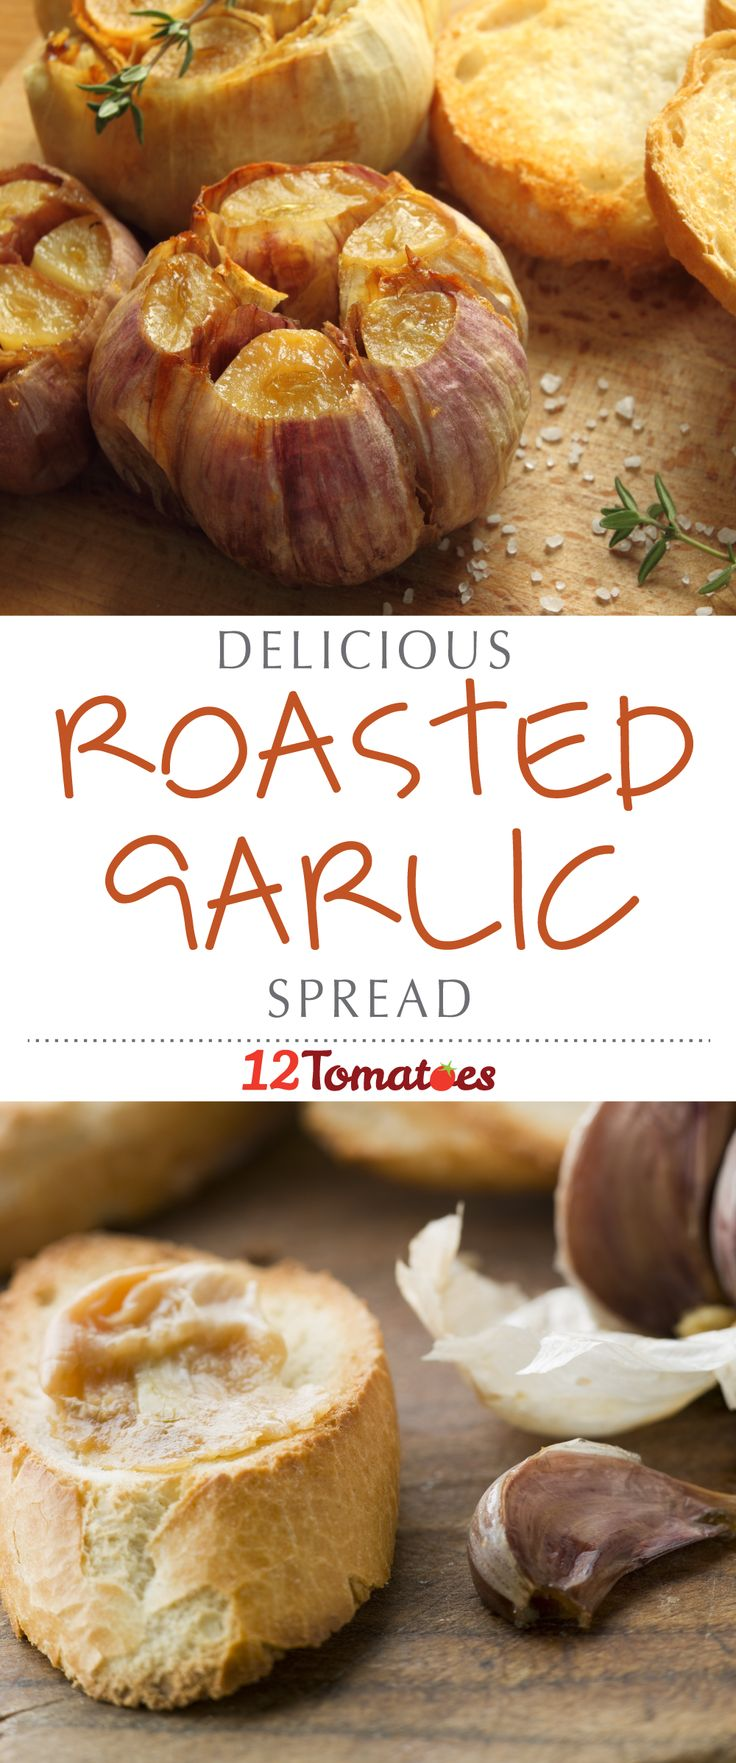 When you think of garlic, you probably think of it as a great way to add flavor or seasoning to a meal; but did you know that by using this special roasting technique, you can transform your garlic into a creamy, spreadable topping? It's great on french bread and pasta, but there are so many ways you can enjoy this savory spread!